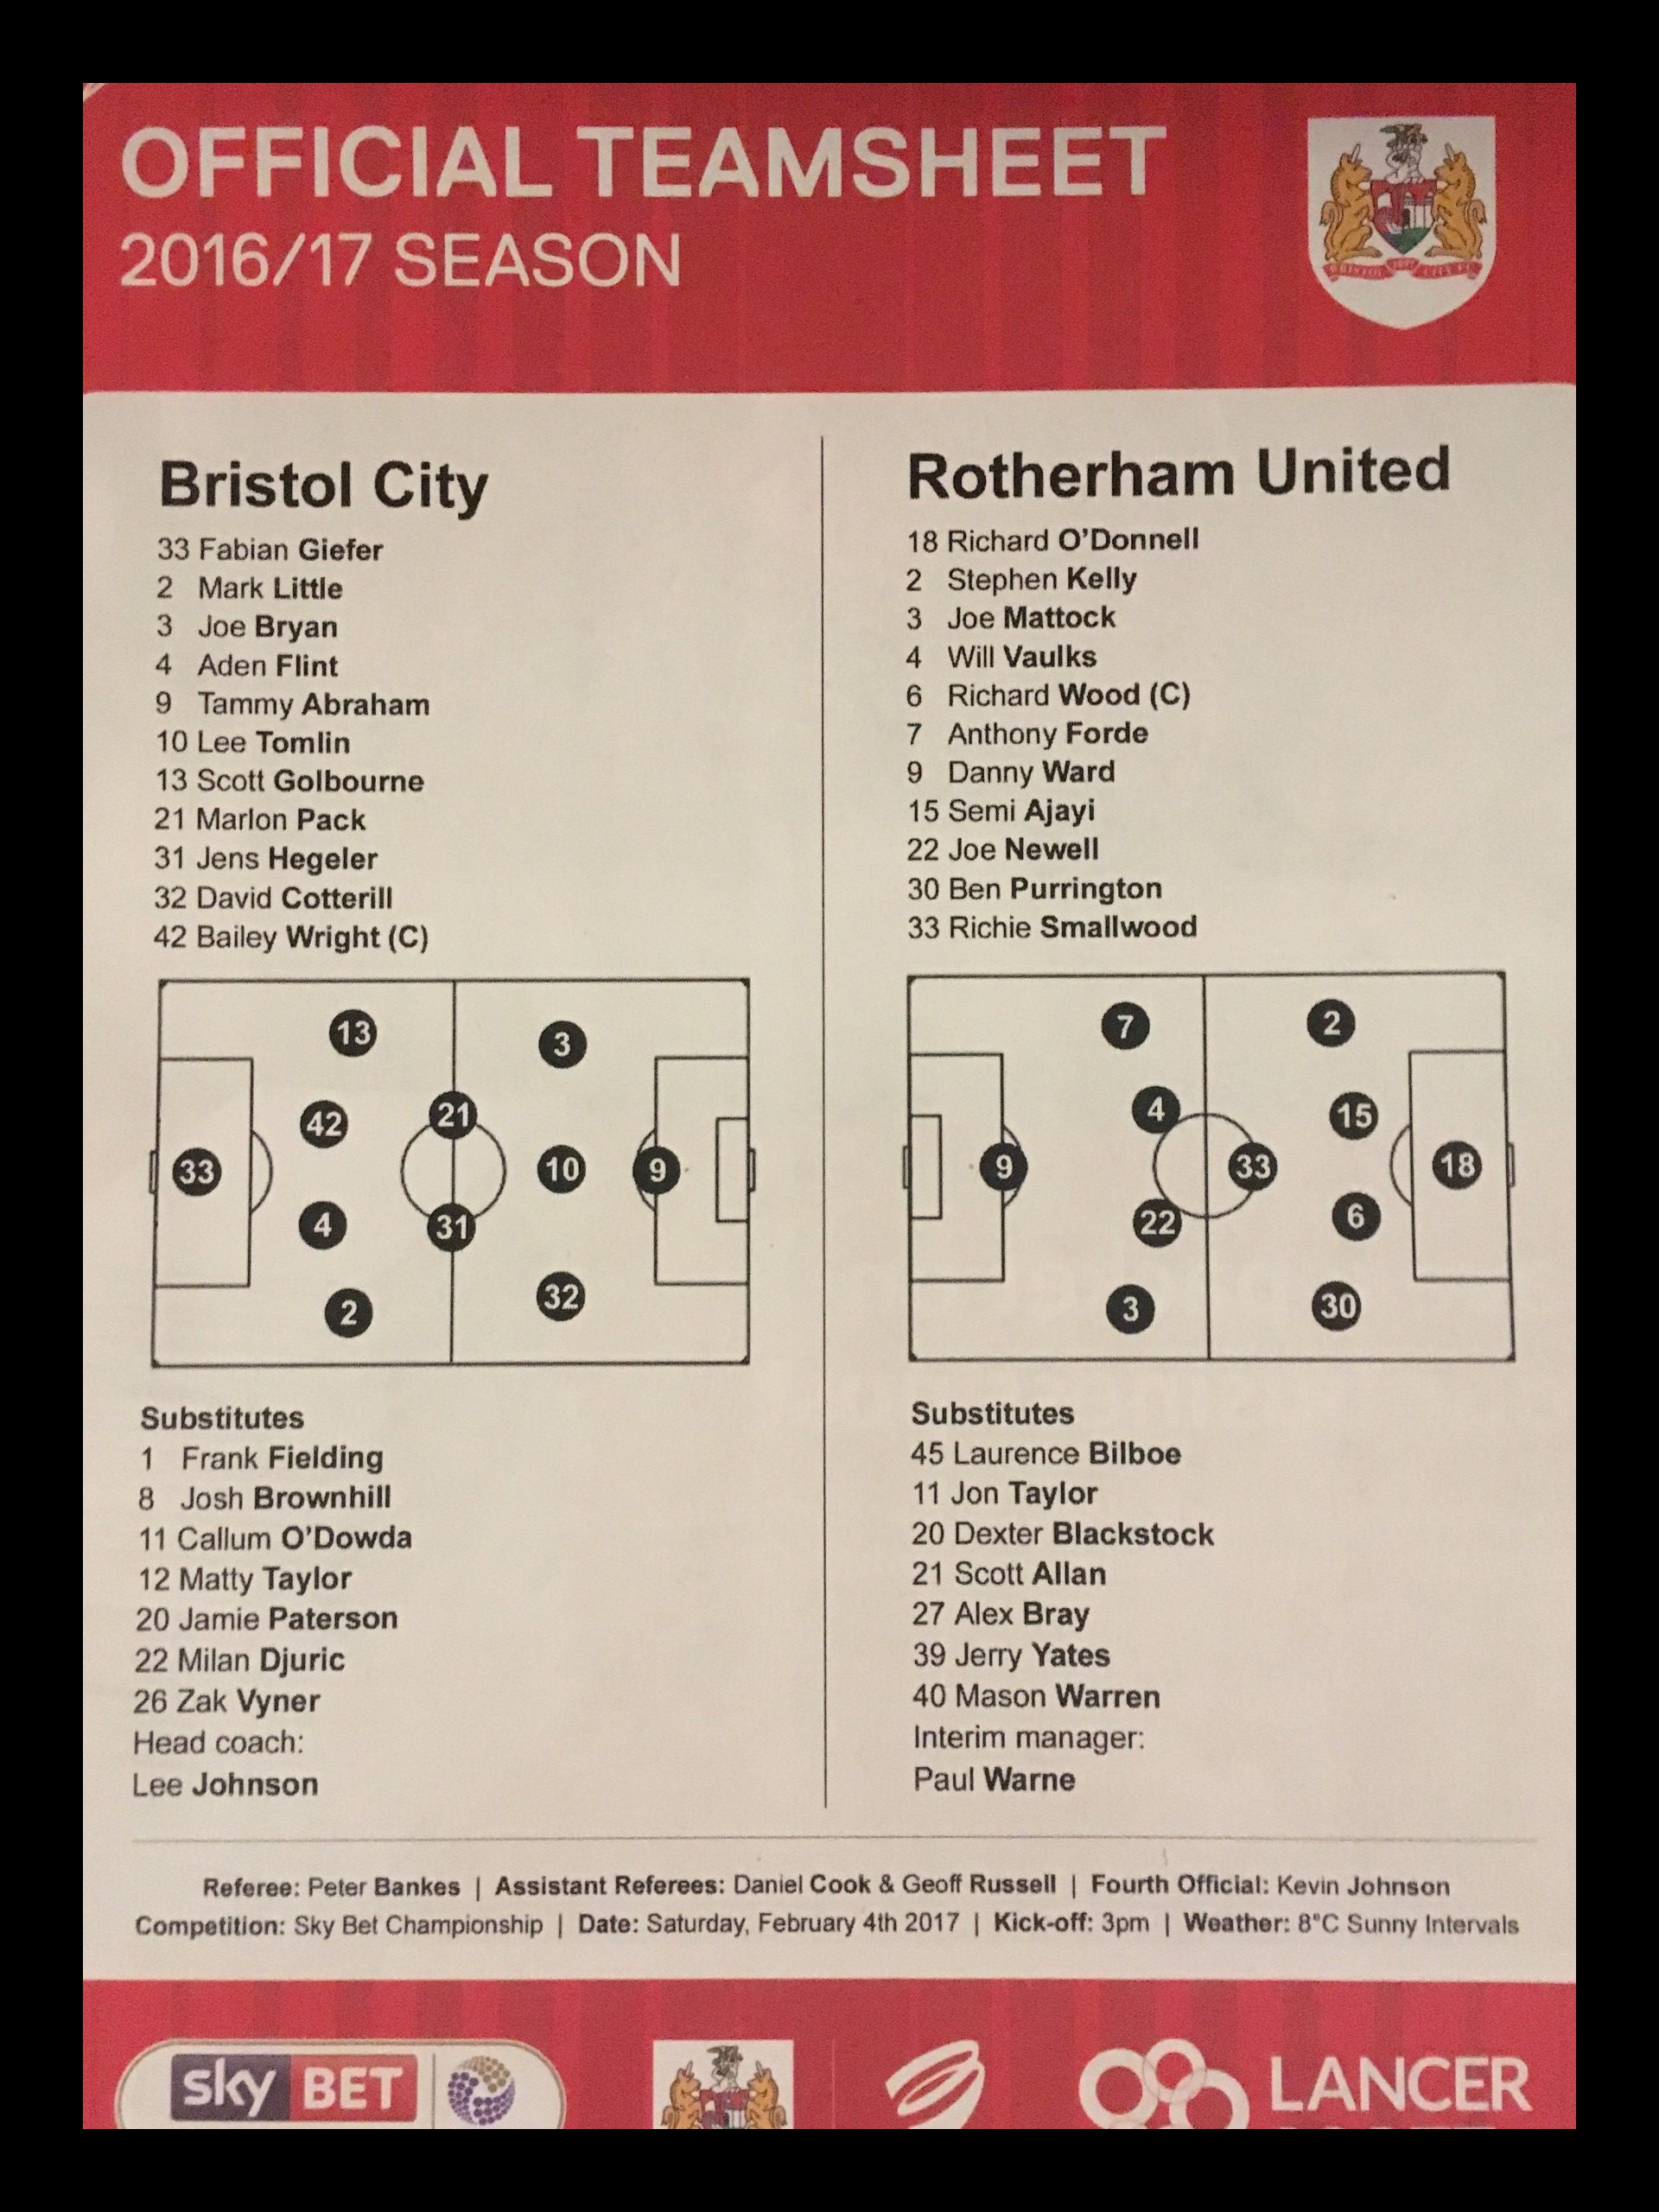 Bristol City v Rotherham United 04-02-17 Team Sheet